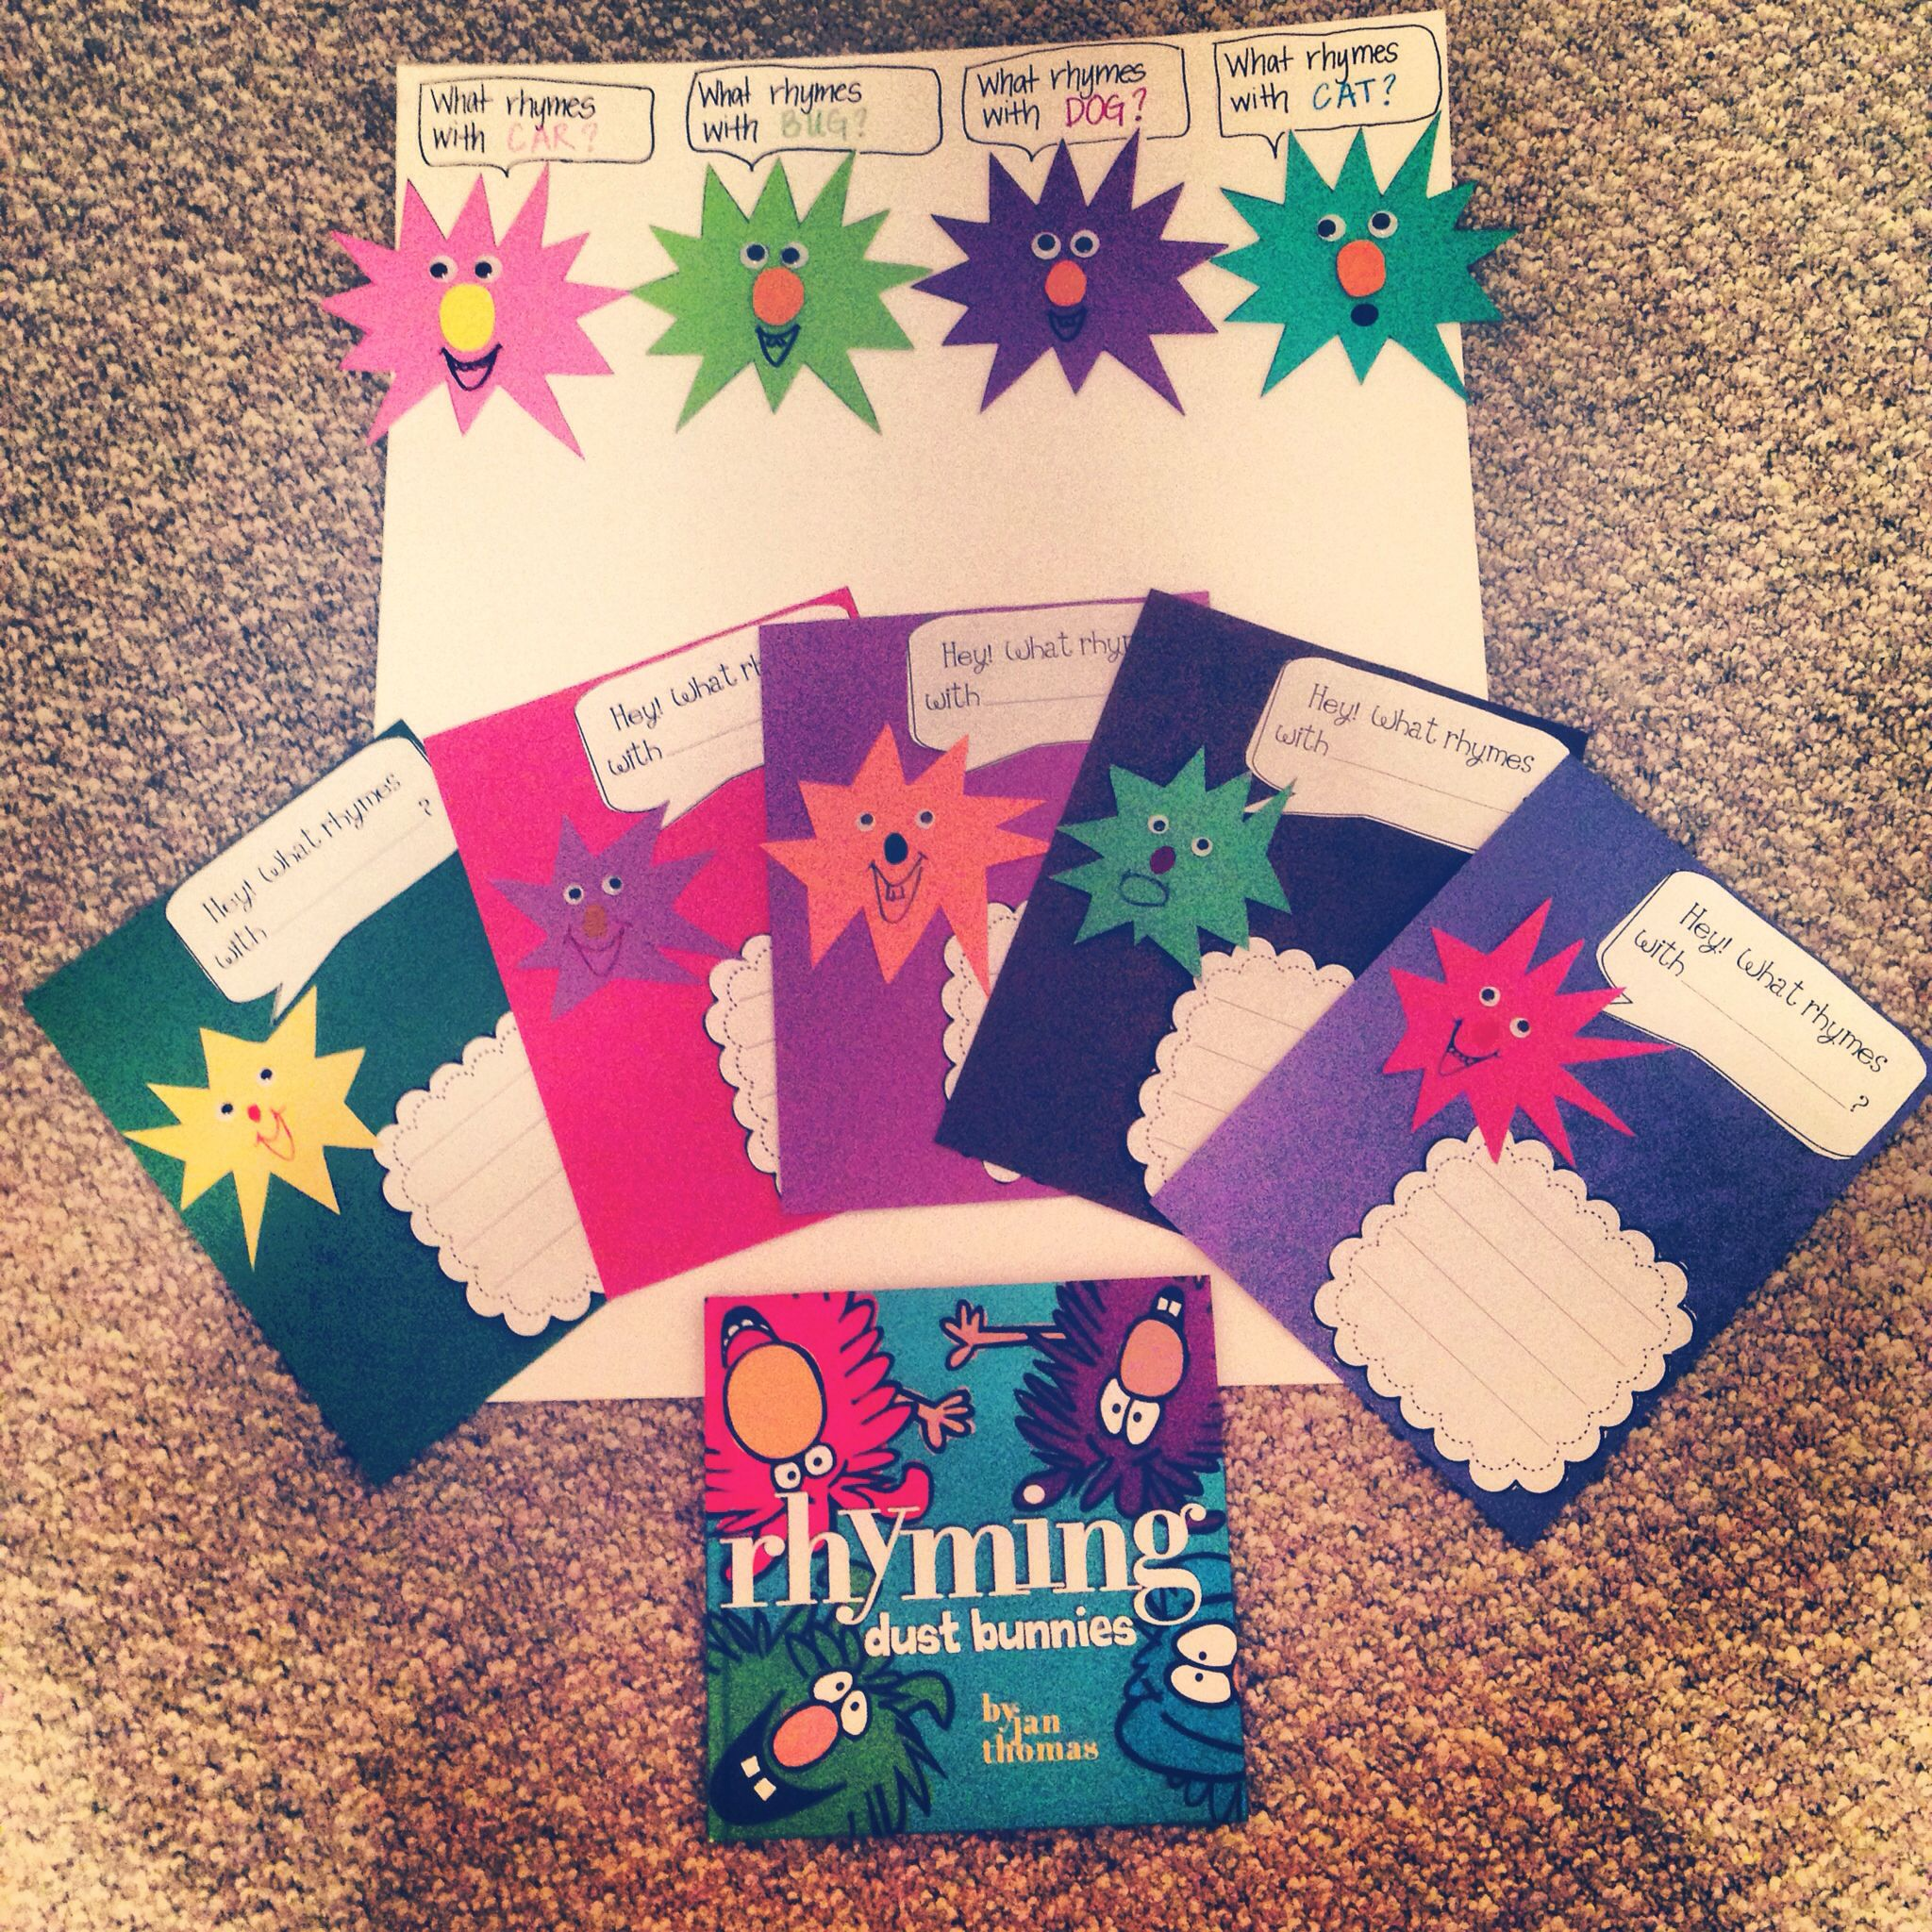 My Finished Product Kindergarten Lesson Plan Rhyming Dust Bunnies Activity Read Book Chart